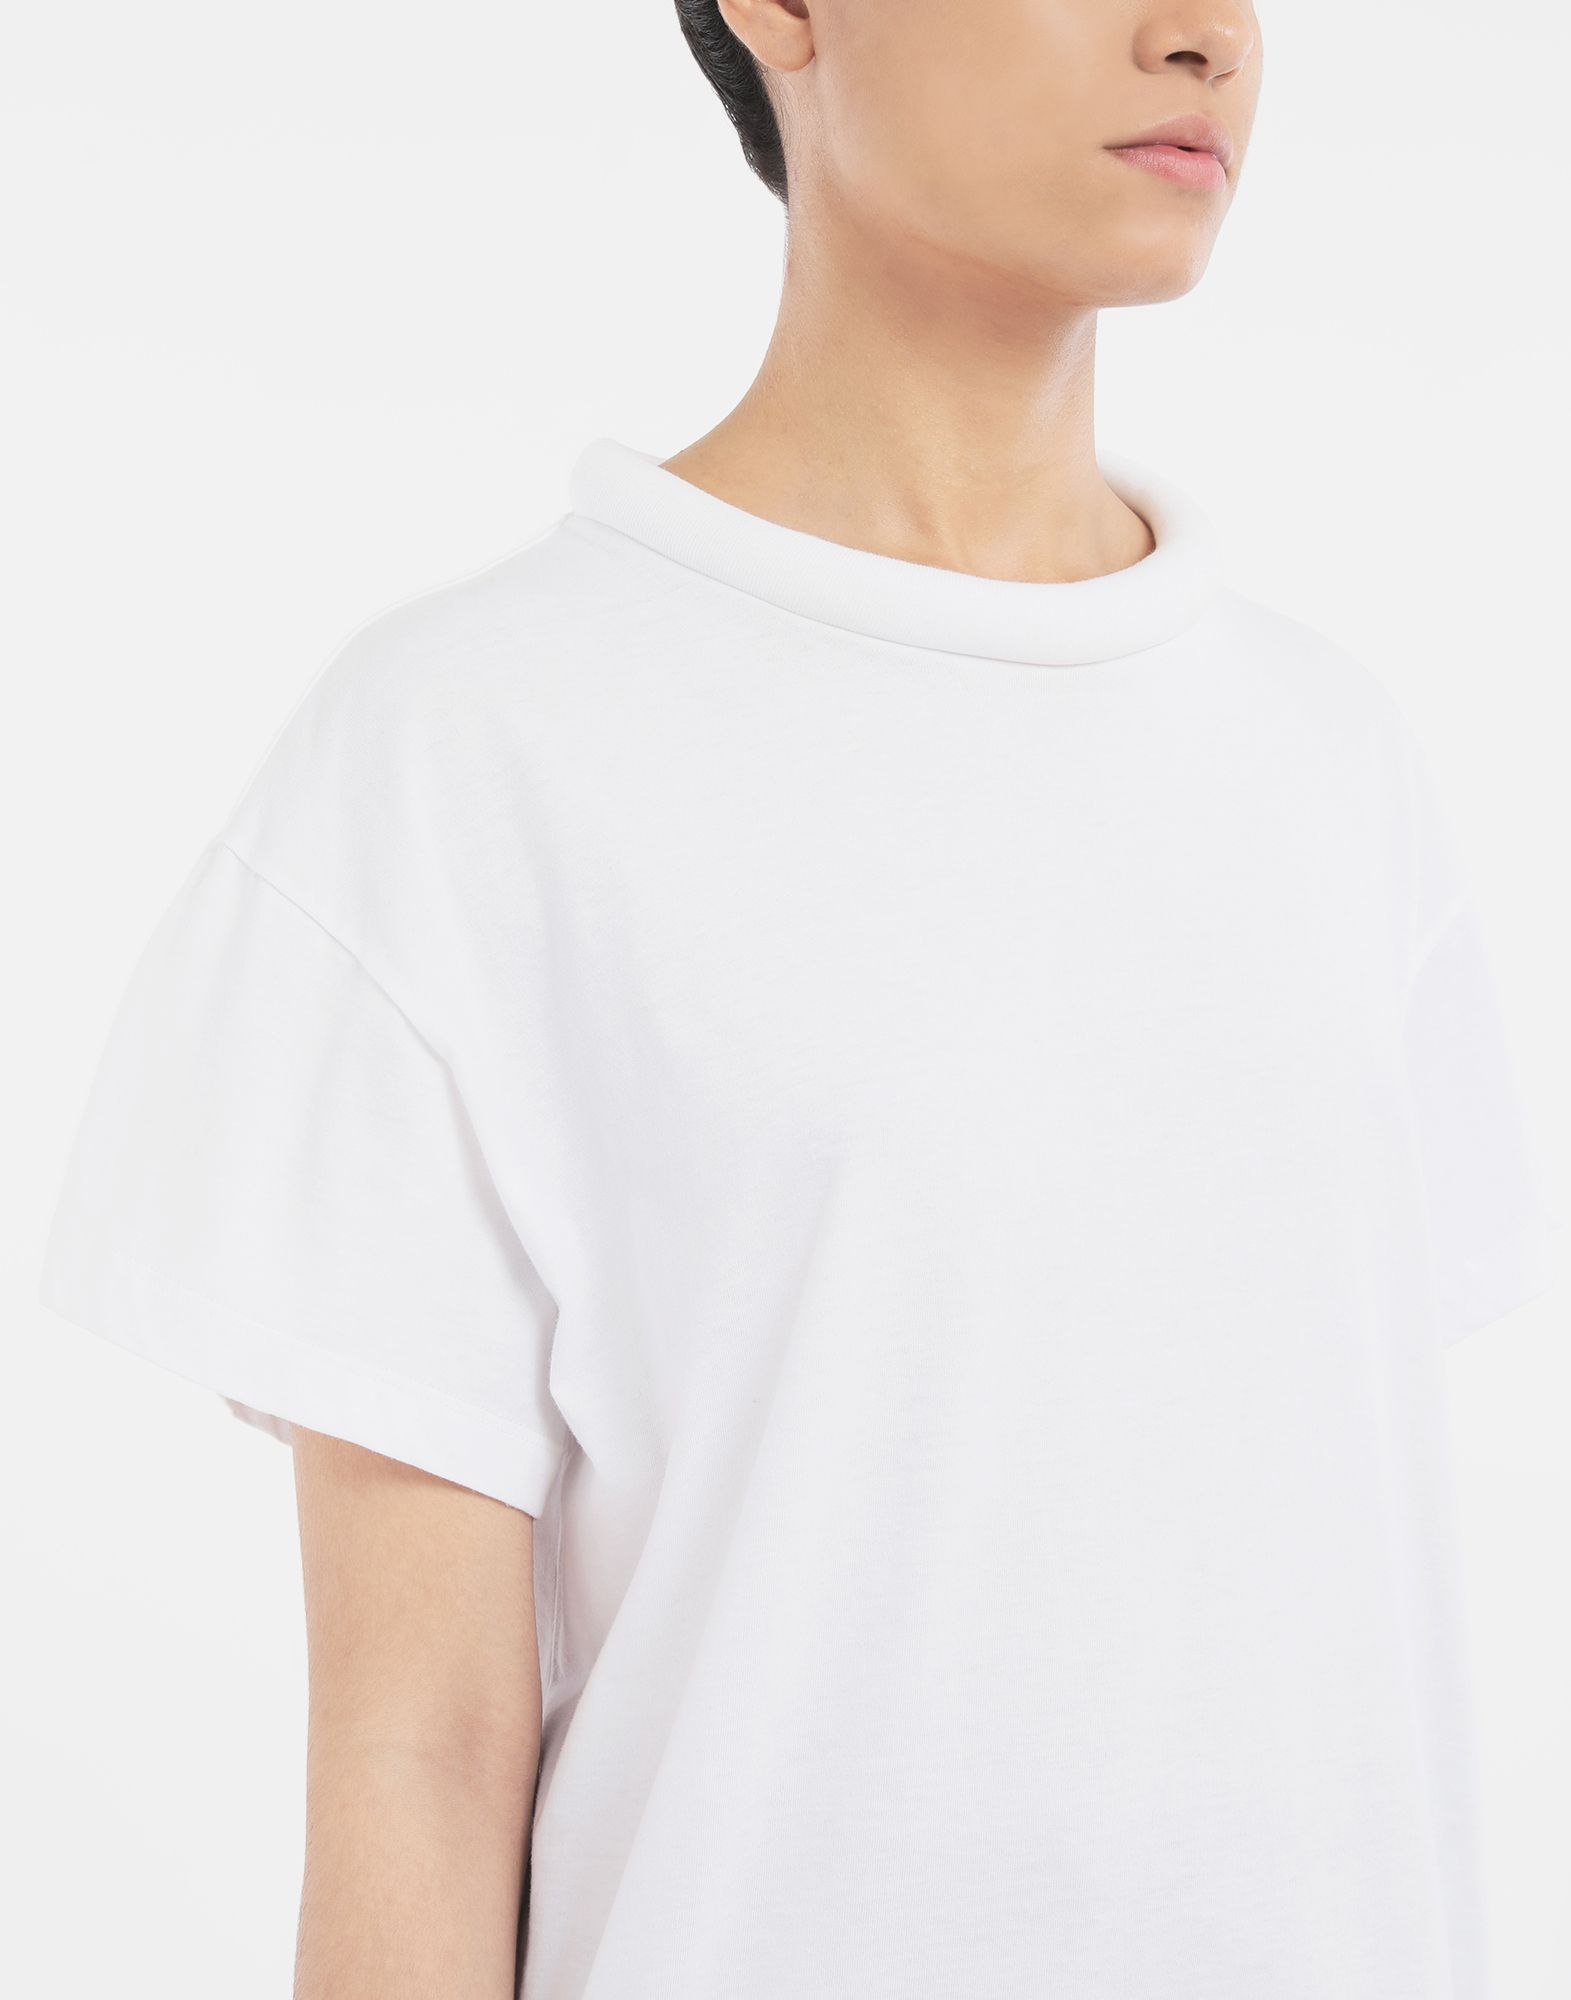 MAISON MARGIELA Padded T-shirt Short sleeve t-shirt Woman a